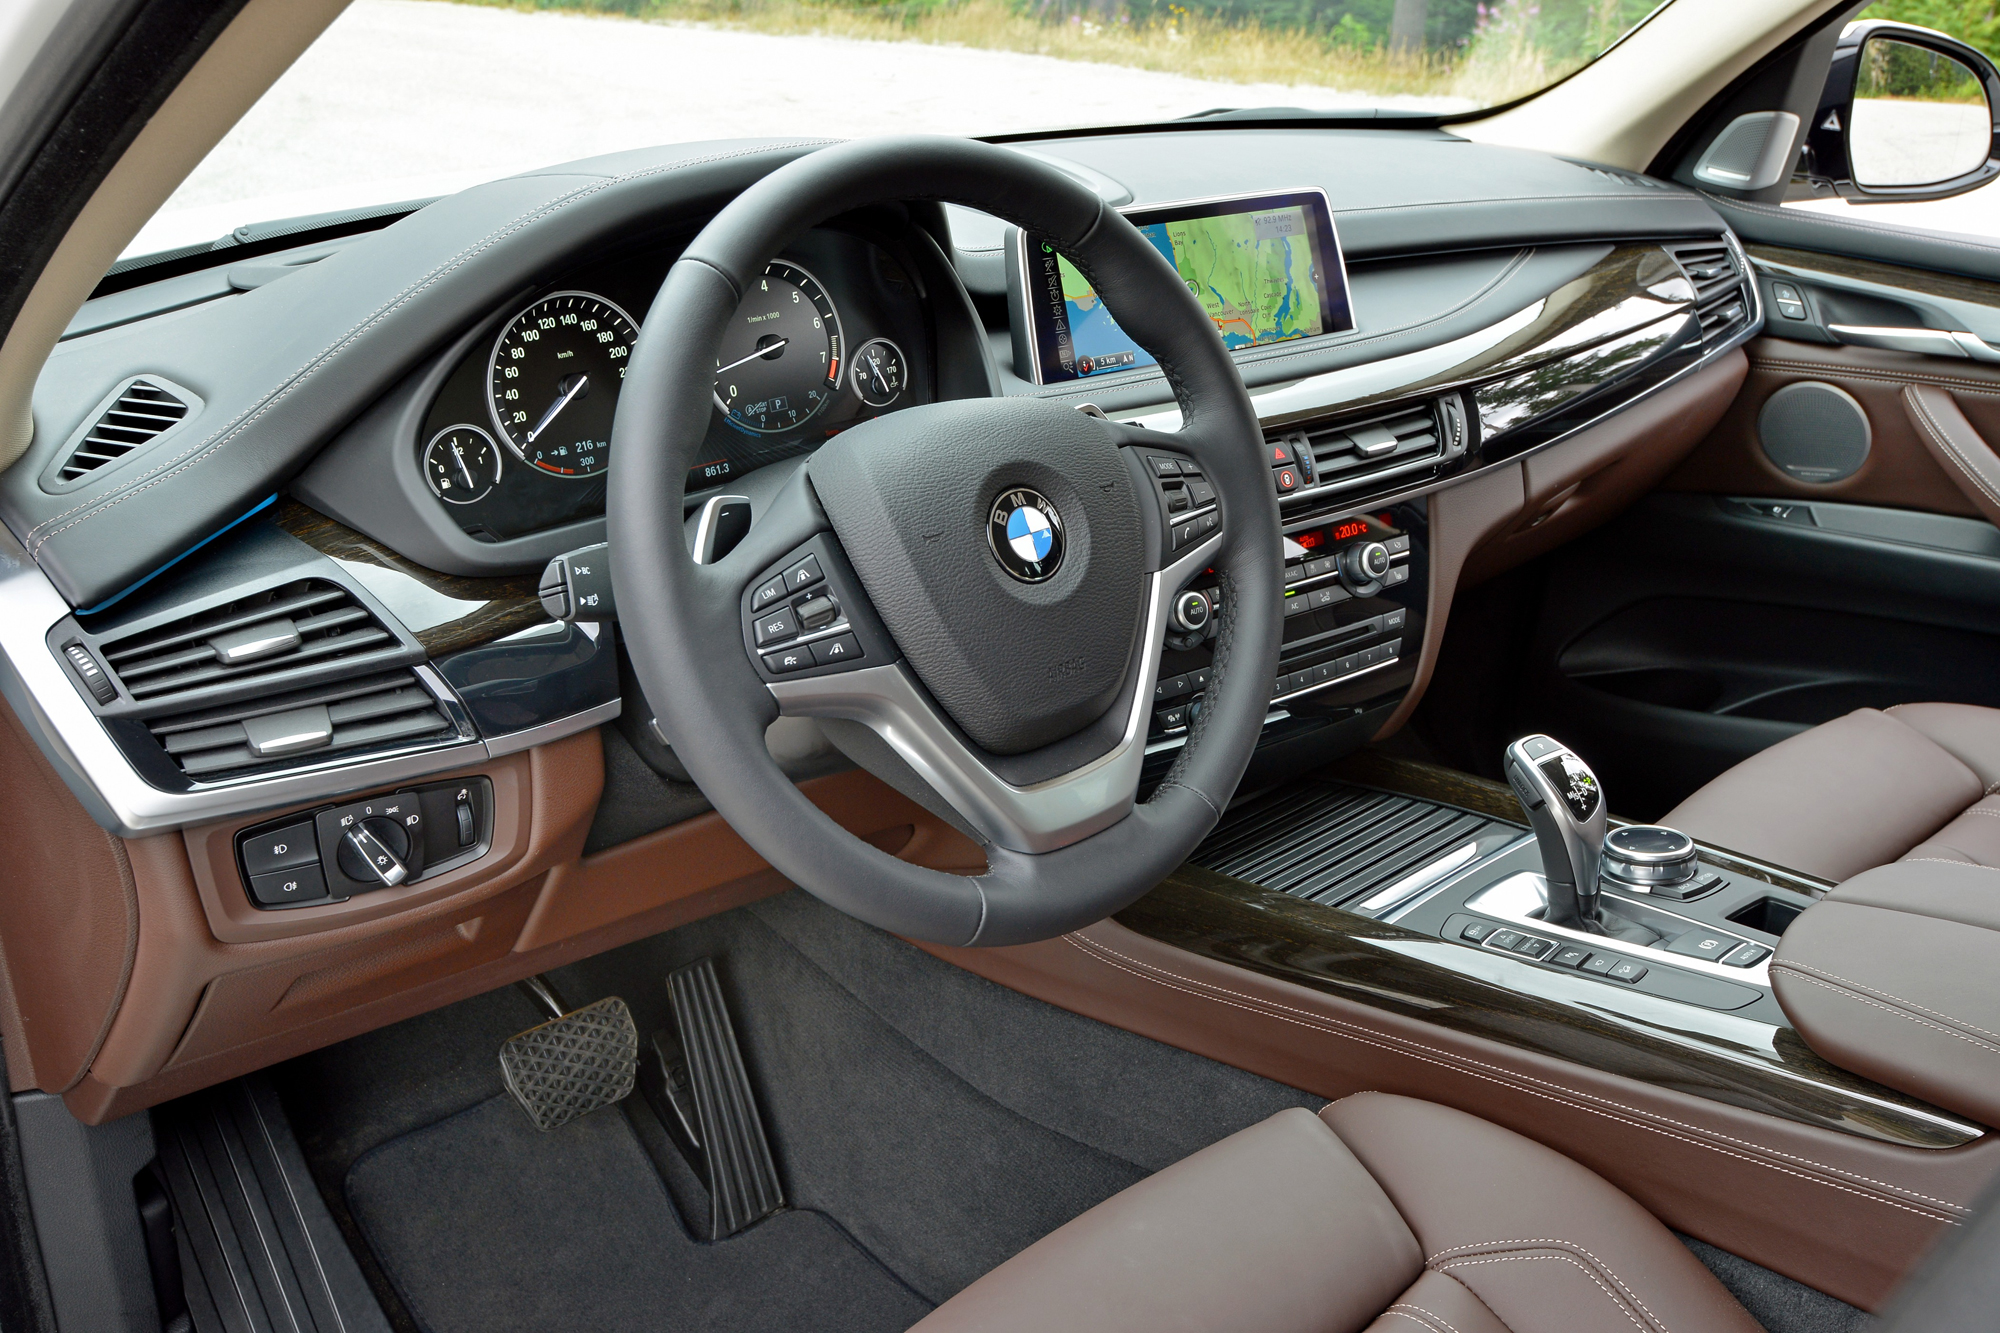 BMW X XDrive I Review Motoring Middle East Car News - 2013 bmw x5 50i